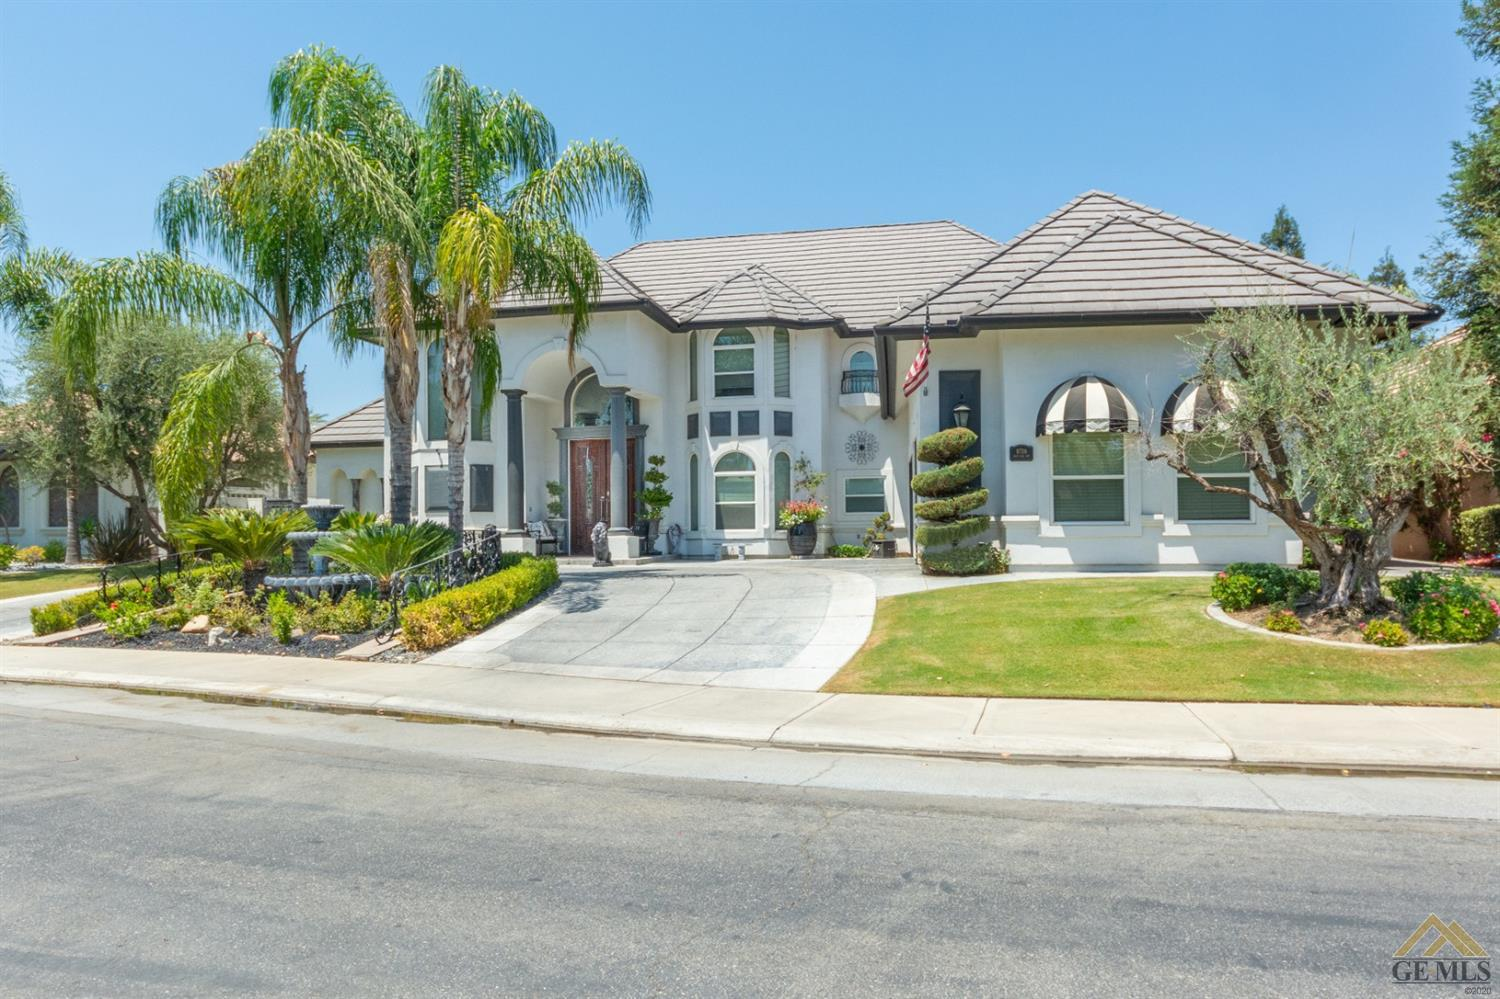 Photo of 8706 Skye Isle Way, Bakersfield, CA 93312